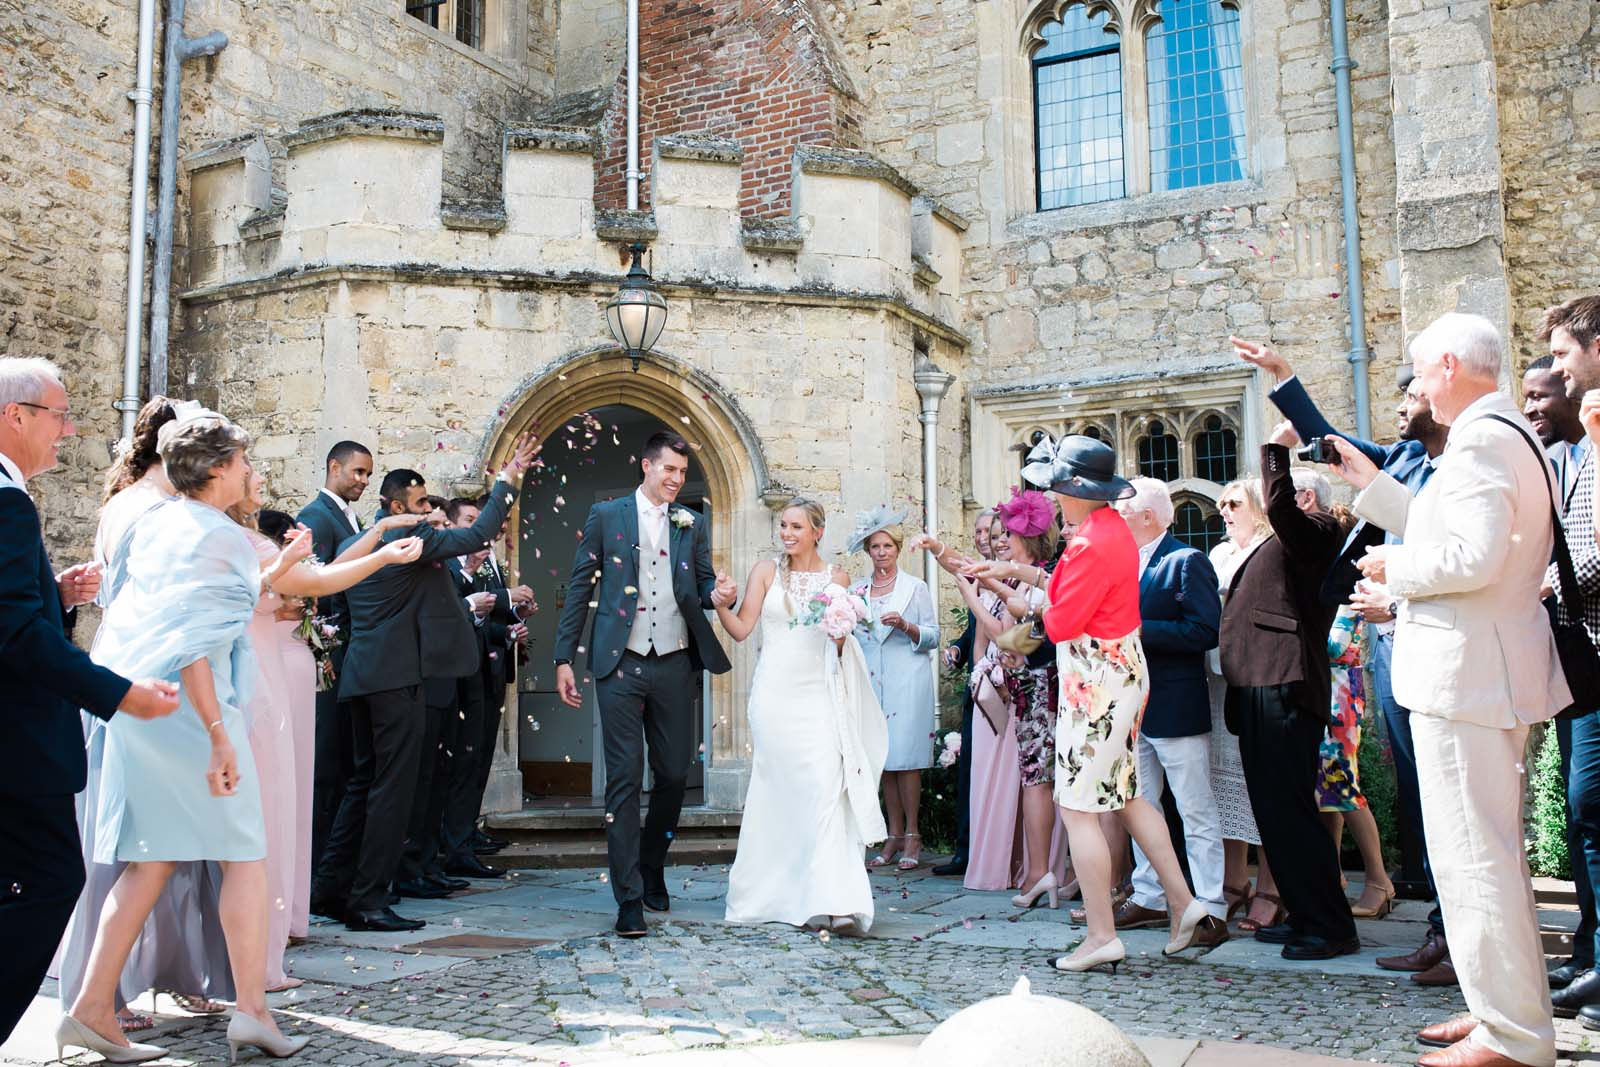 Notley Abbey wedding in Buckinghamshire - confetti shot after the ceremony